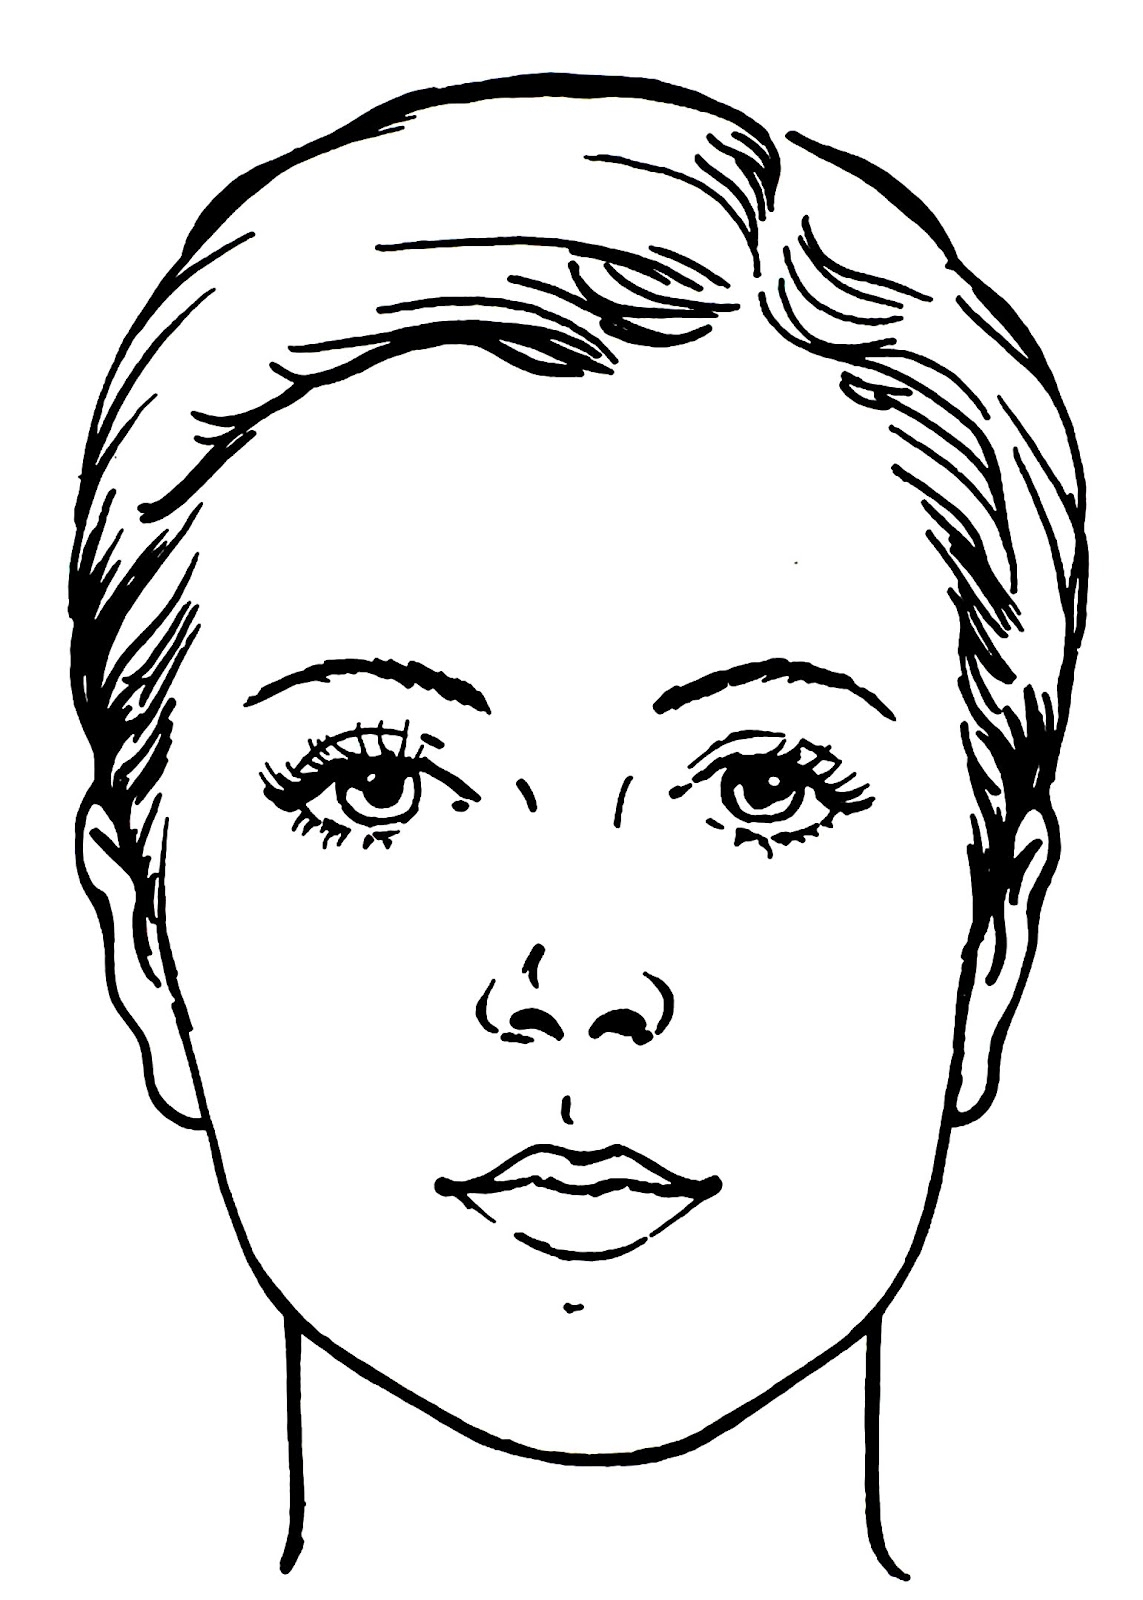 Coloring Pages Faces Ideas - Drewolanoff.com